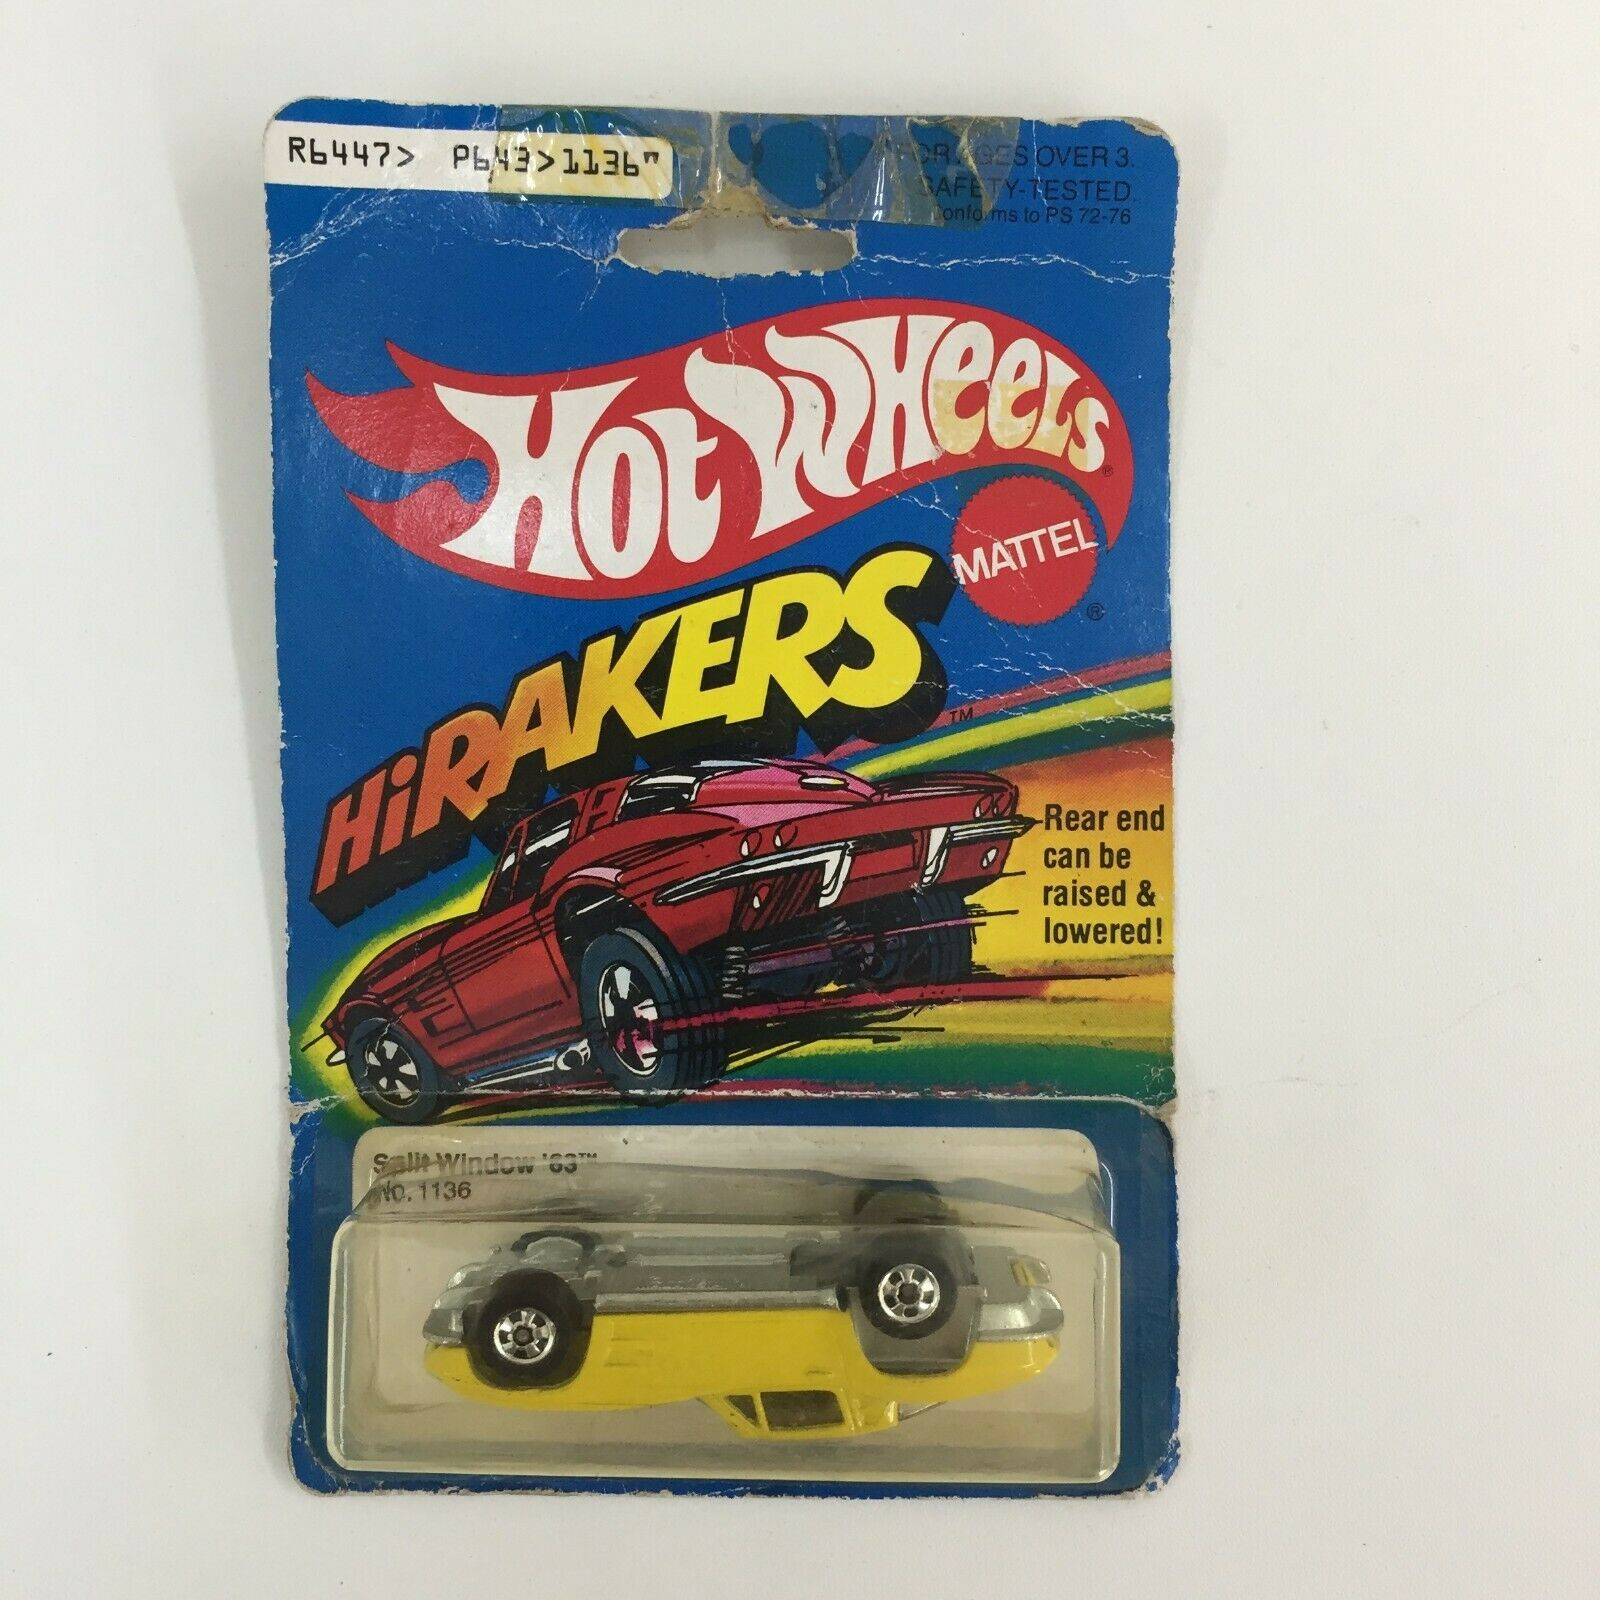 HOT WHEELS CORVETTE SPLIT WINDOW '63 ON CARD HIRAKERS NEW 1979 UPSIDE DOWN 1136